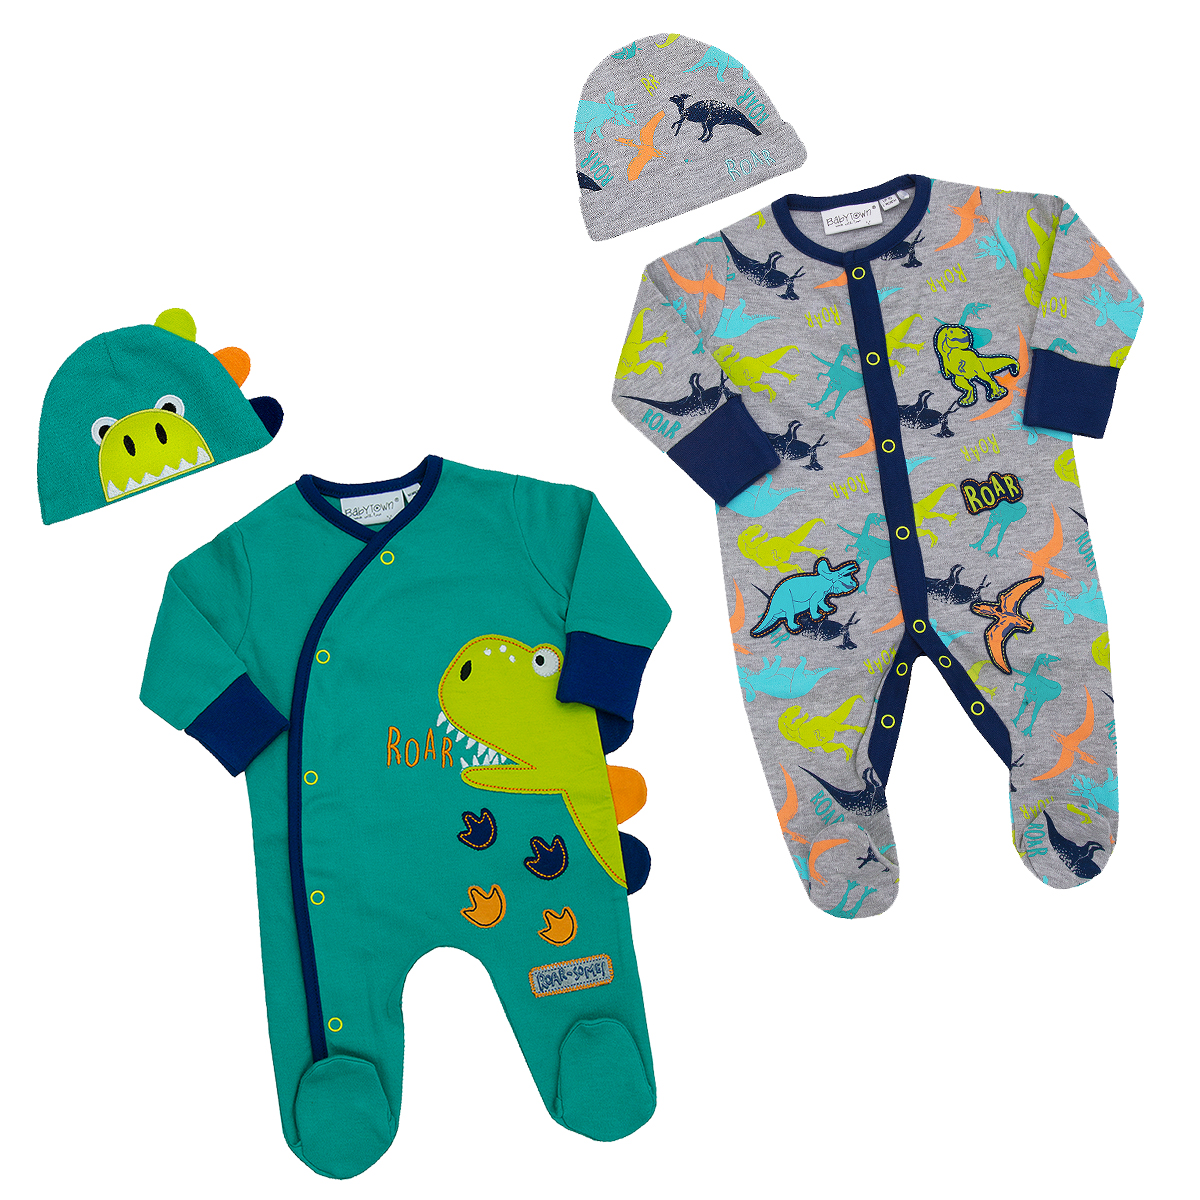 Babytown Baby Boys Themed 2 Piece Sleepsuit with Scratch Mitts